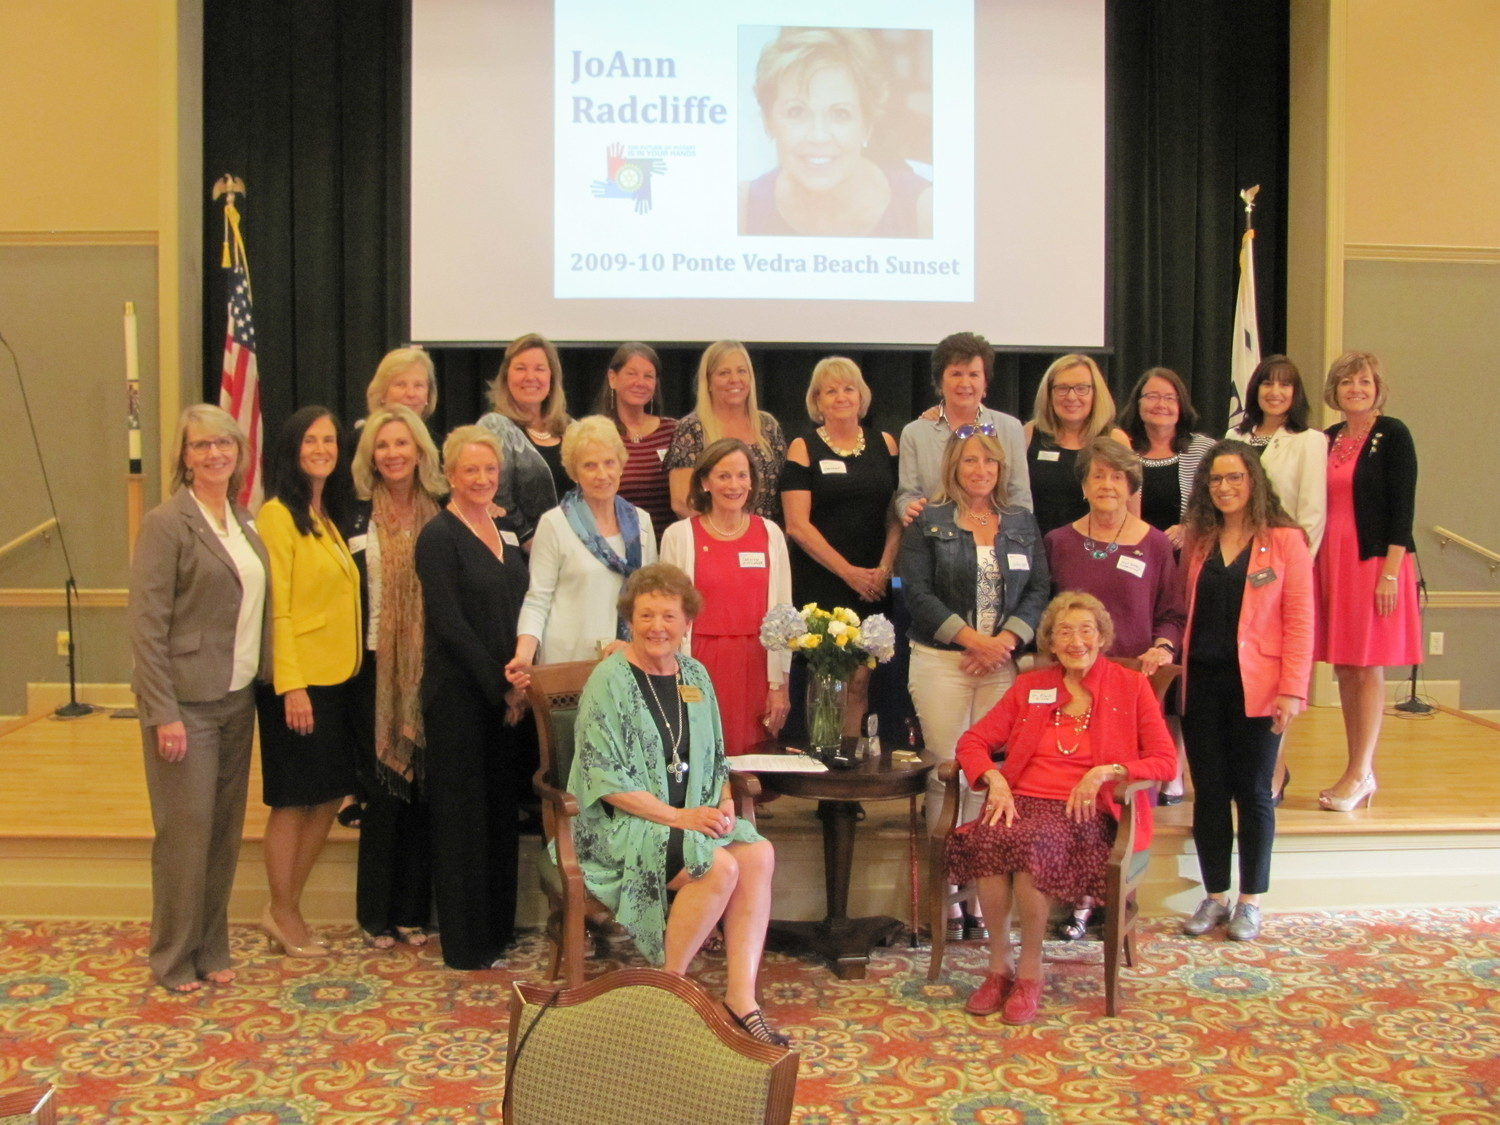 Past and current female presidents and leaders of local Rotary clubs were honored Monday, May 21 at Fleet Landing at an event that celebrated 30 years of women in Rotary.